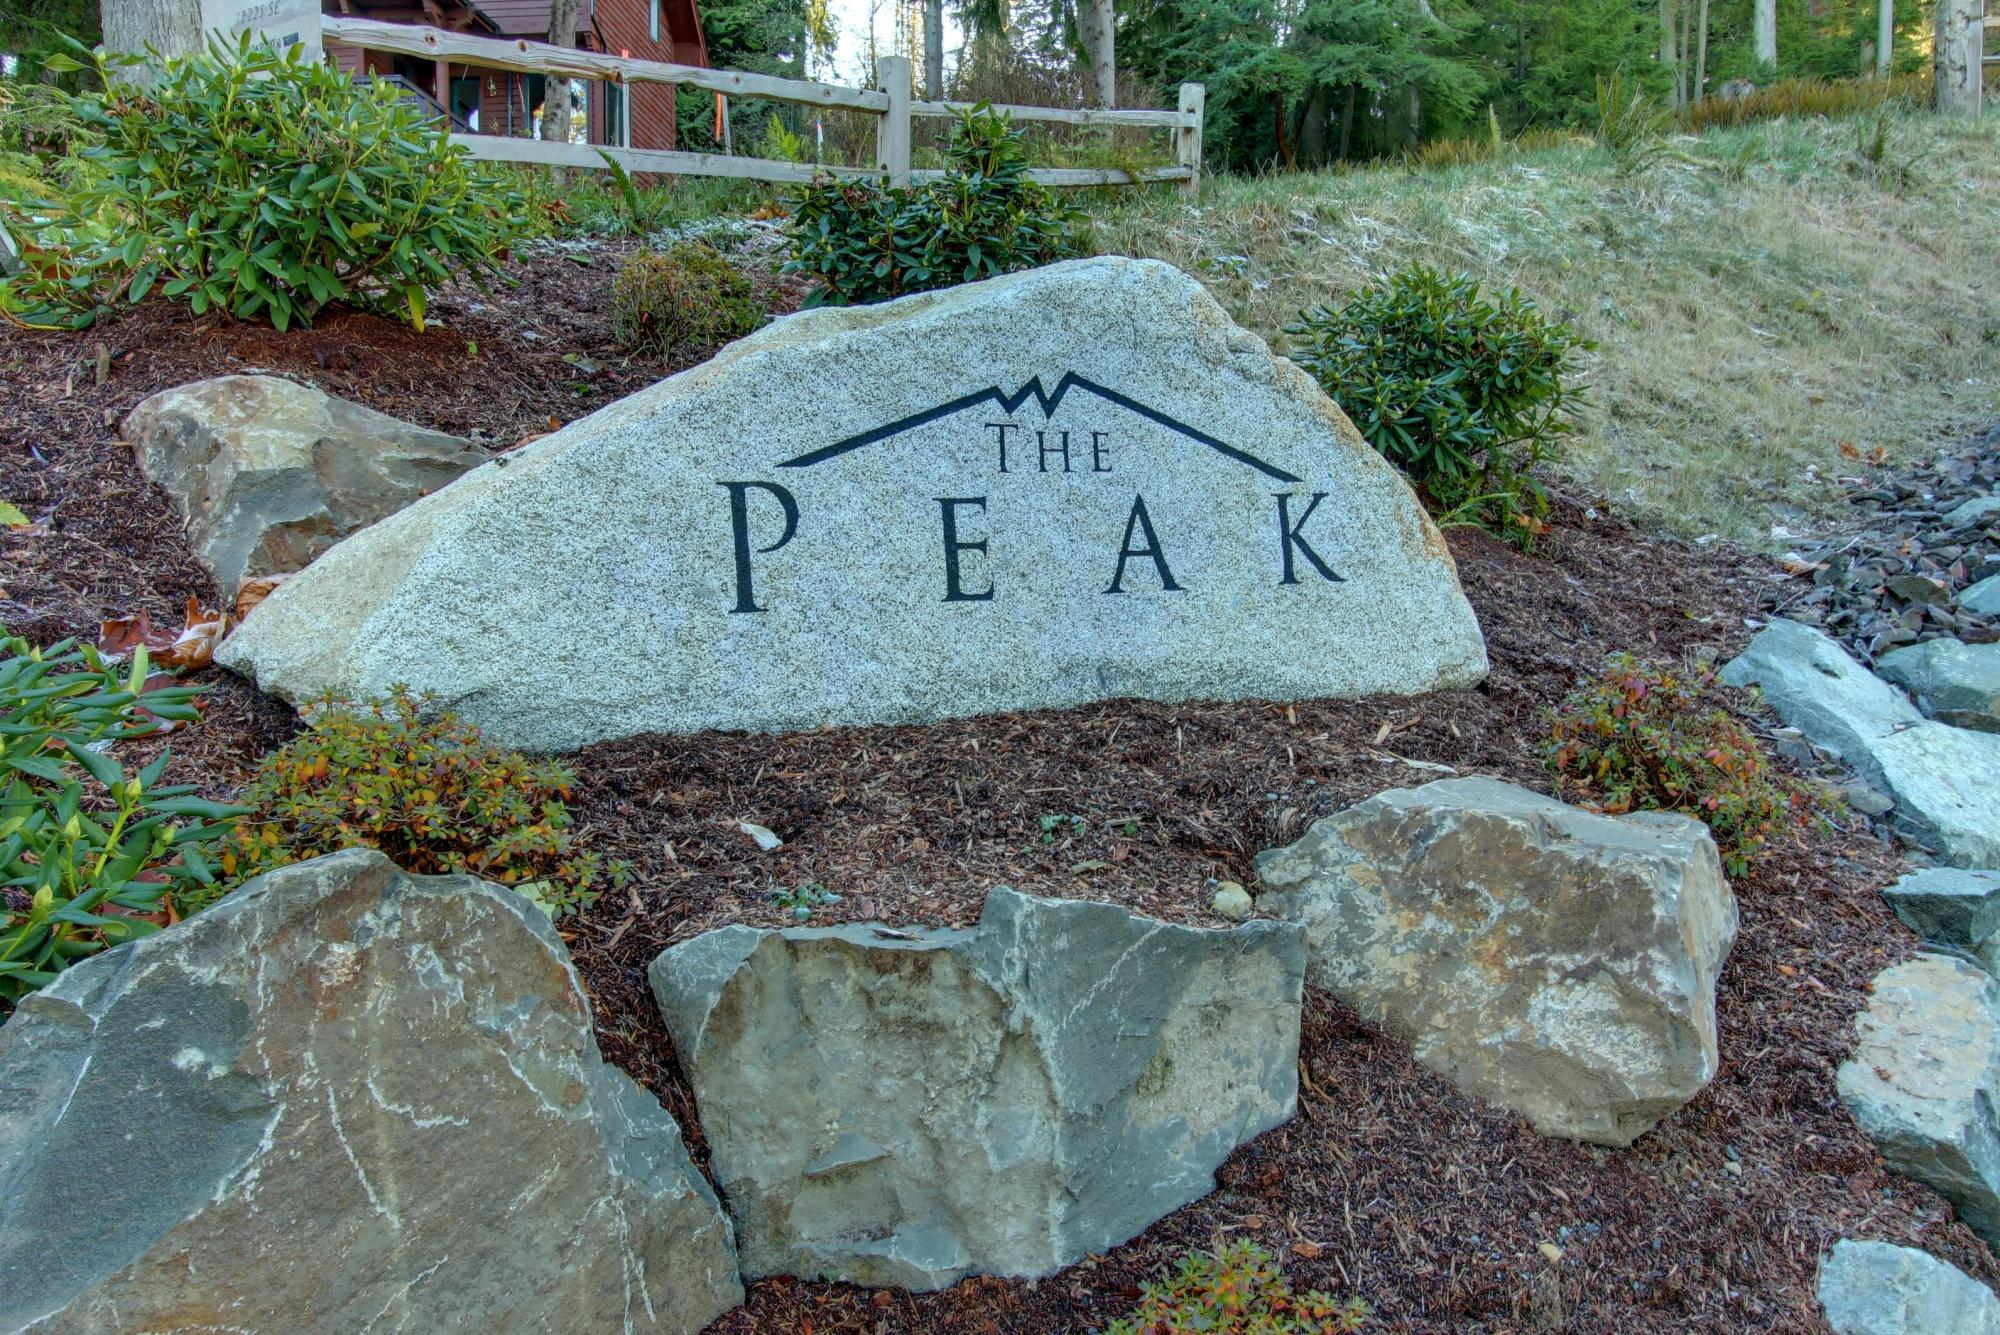 Welcome to Peak!